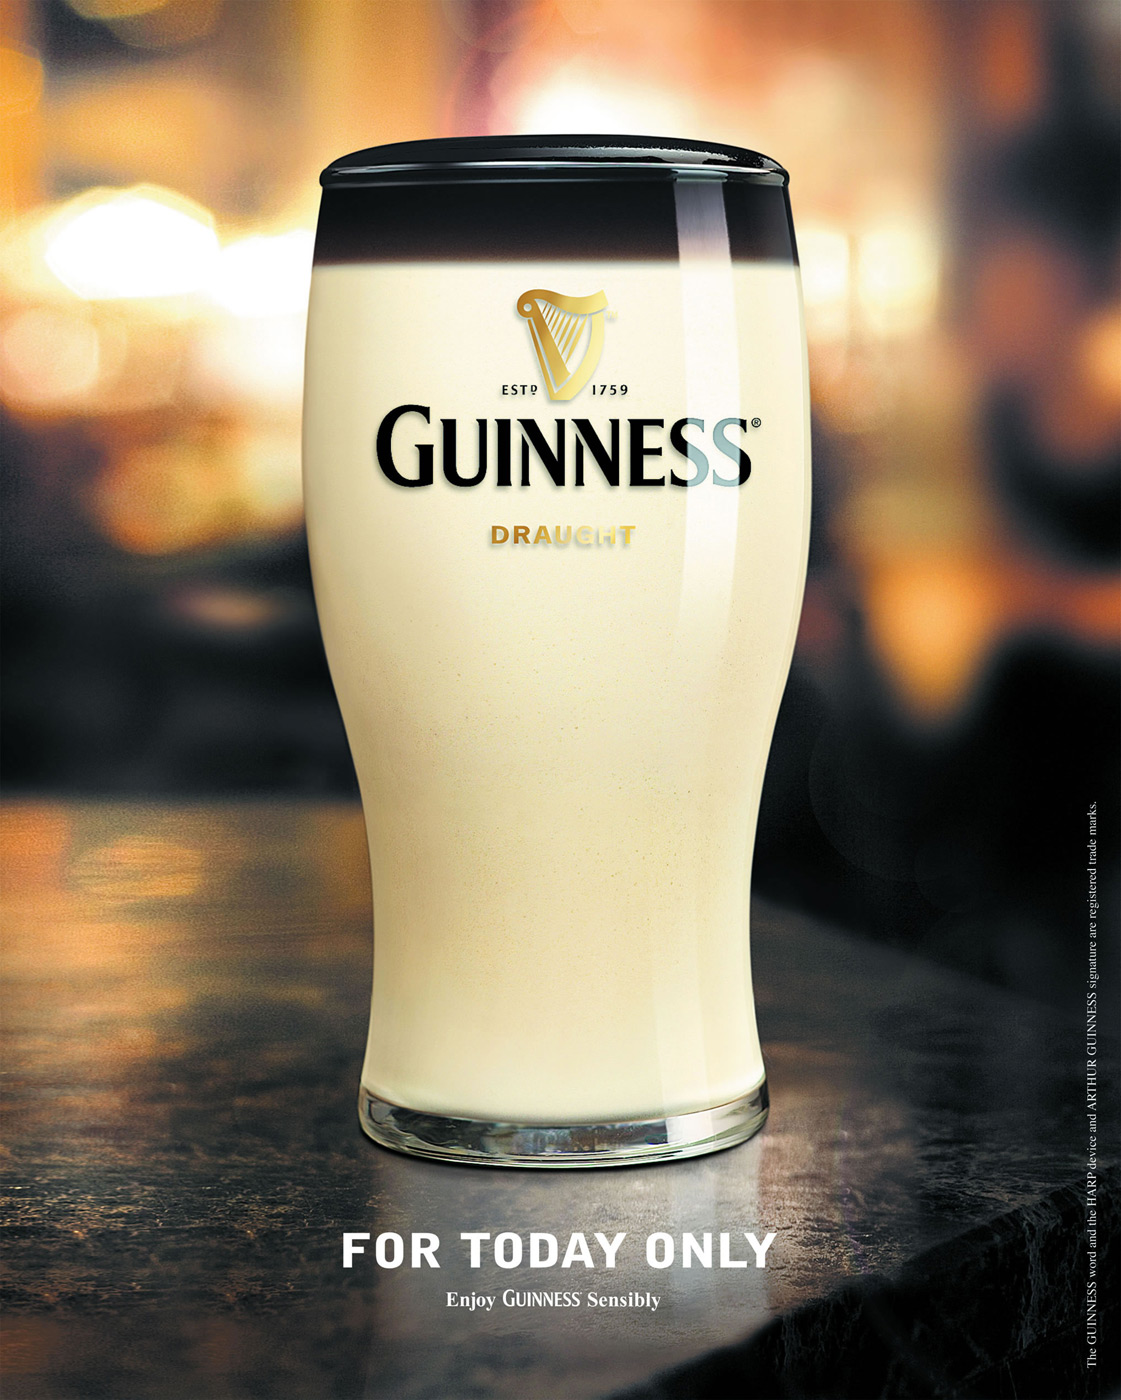 Creative Ads for Guinness